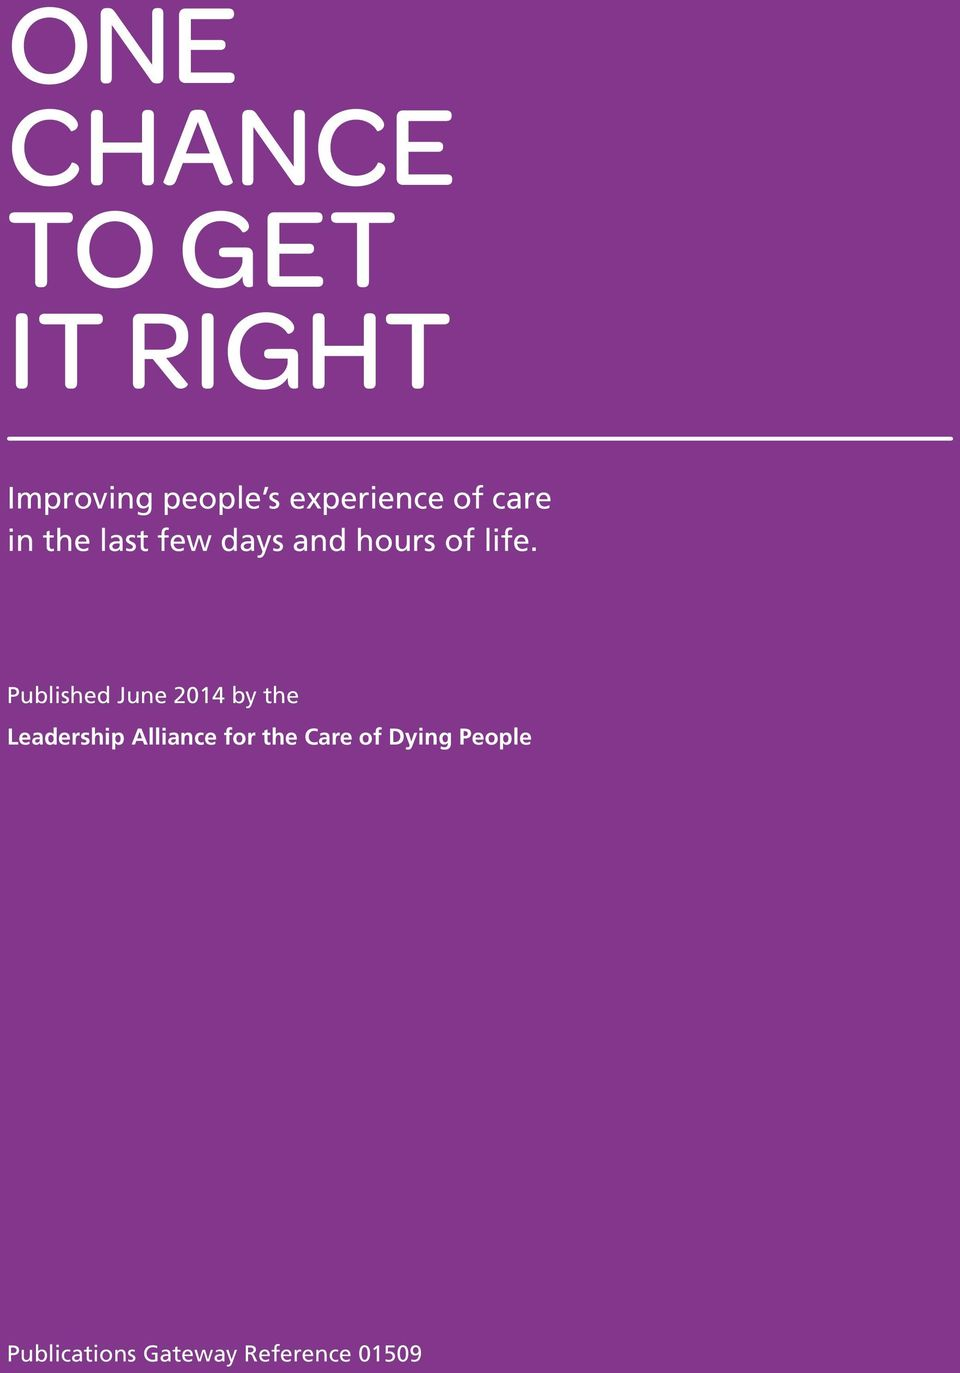 life. Published June 2014 by the Leadership Alliance